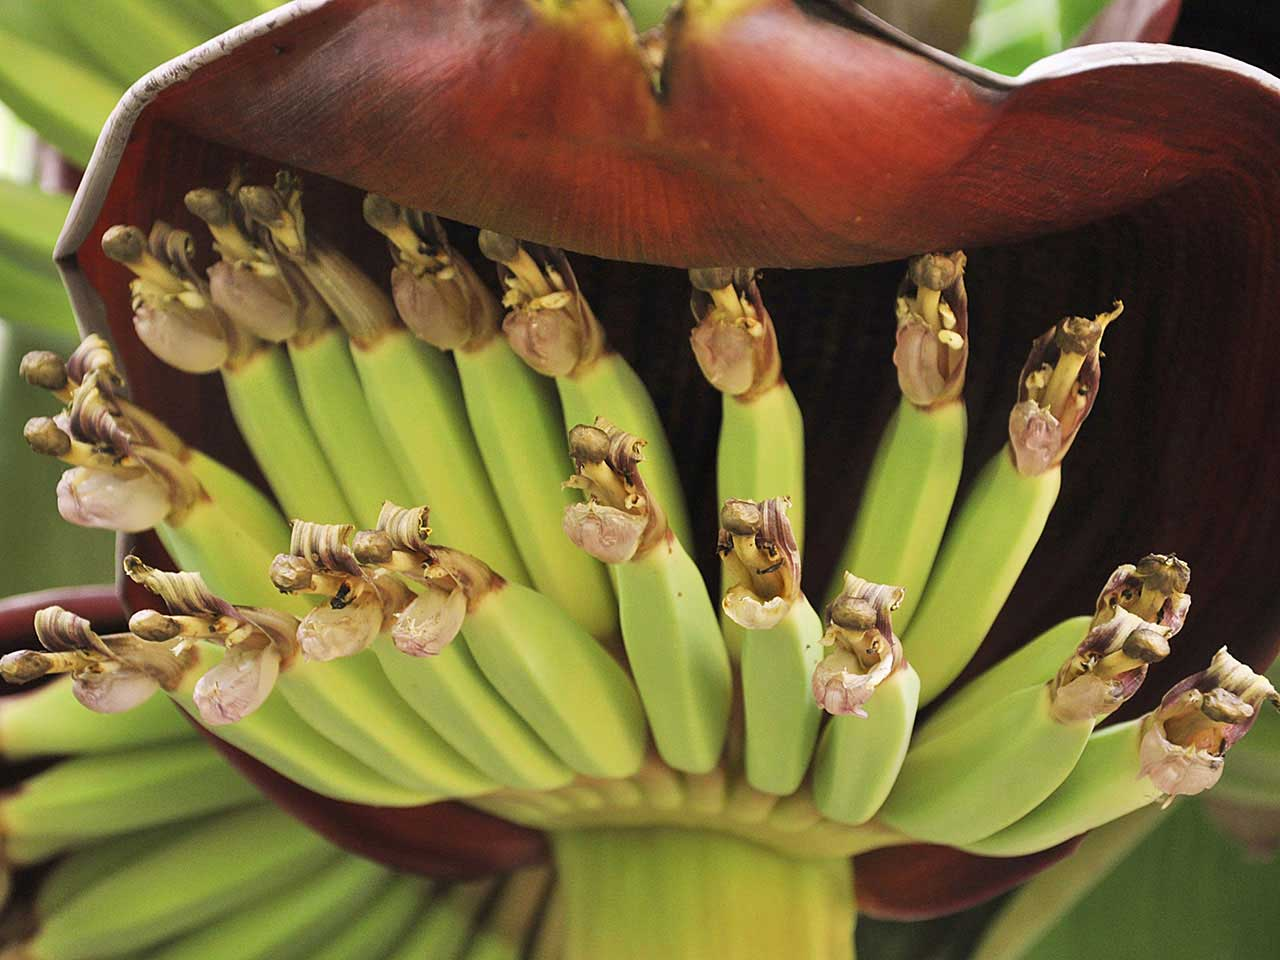 Musa basjoo, the hardy Japanese banana plant